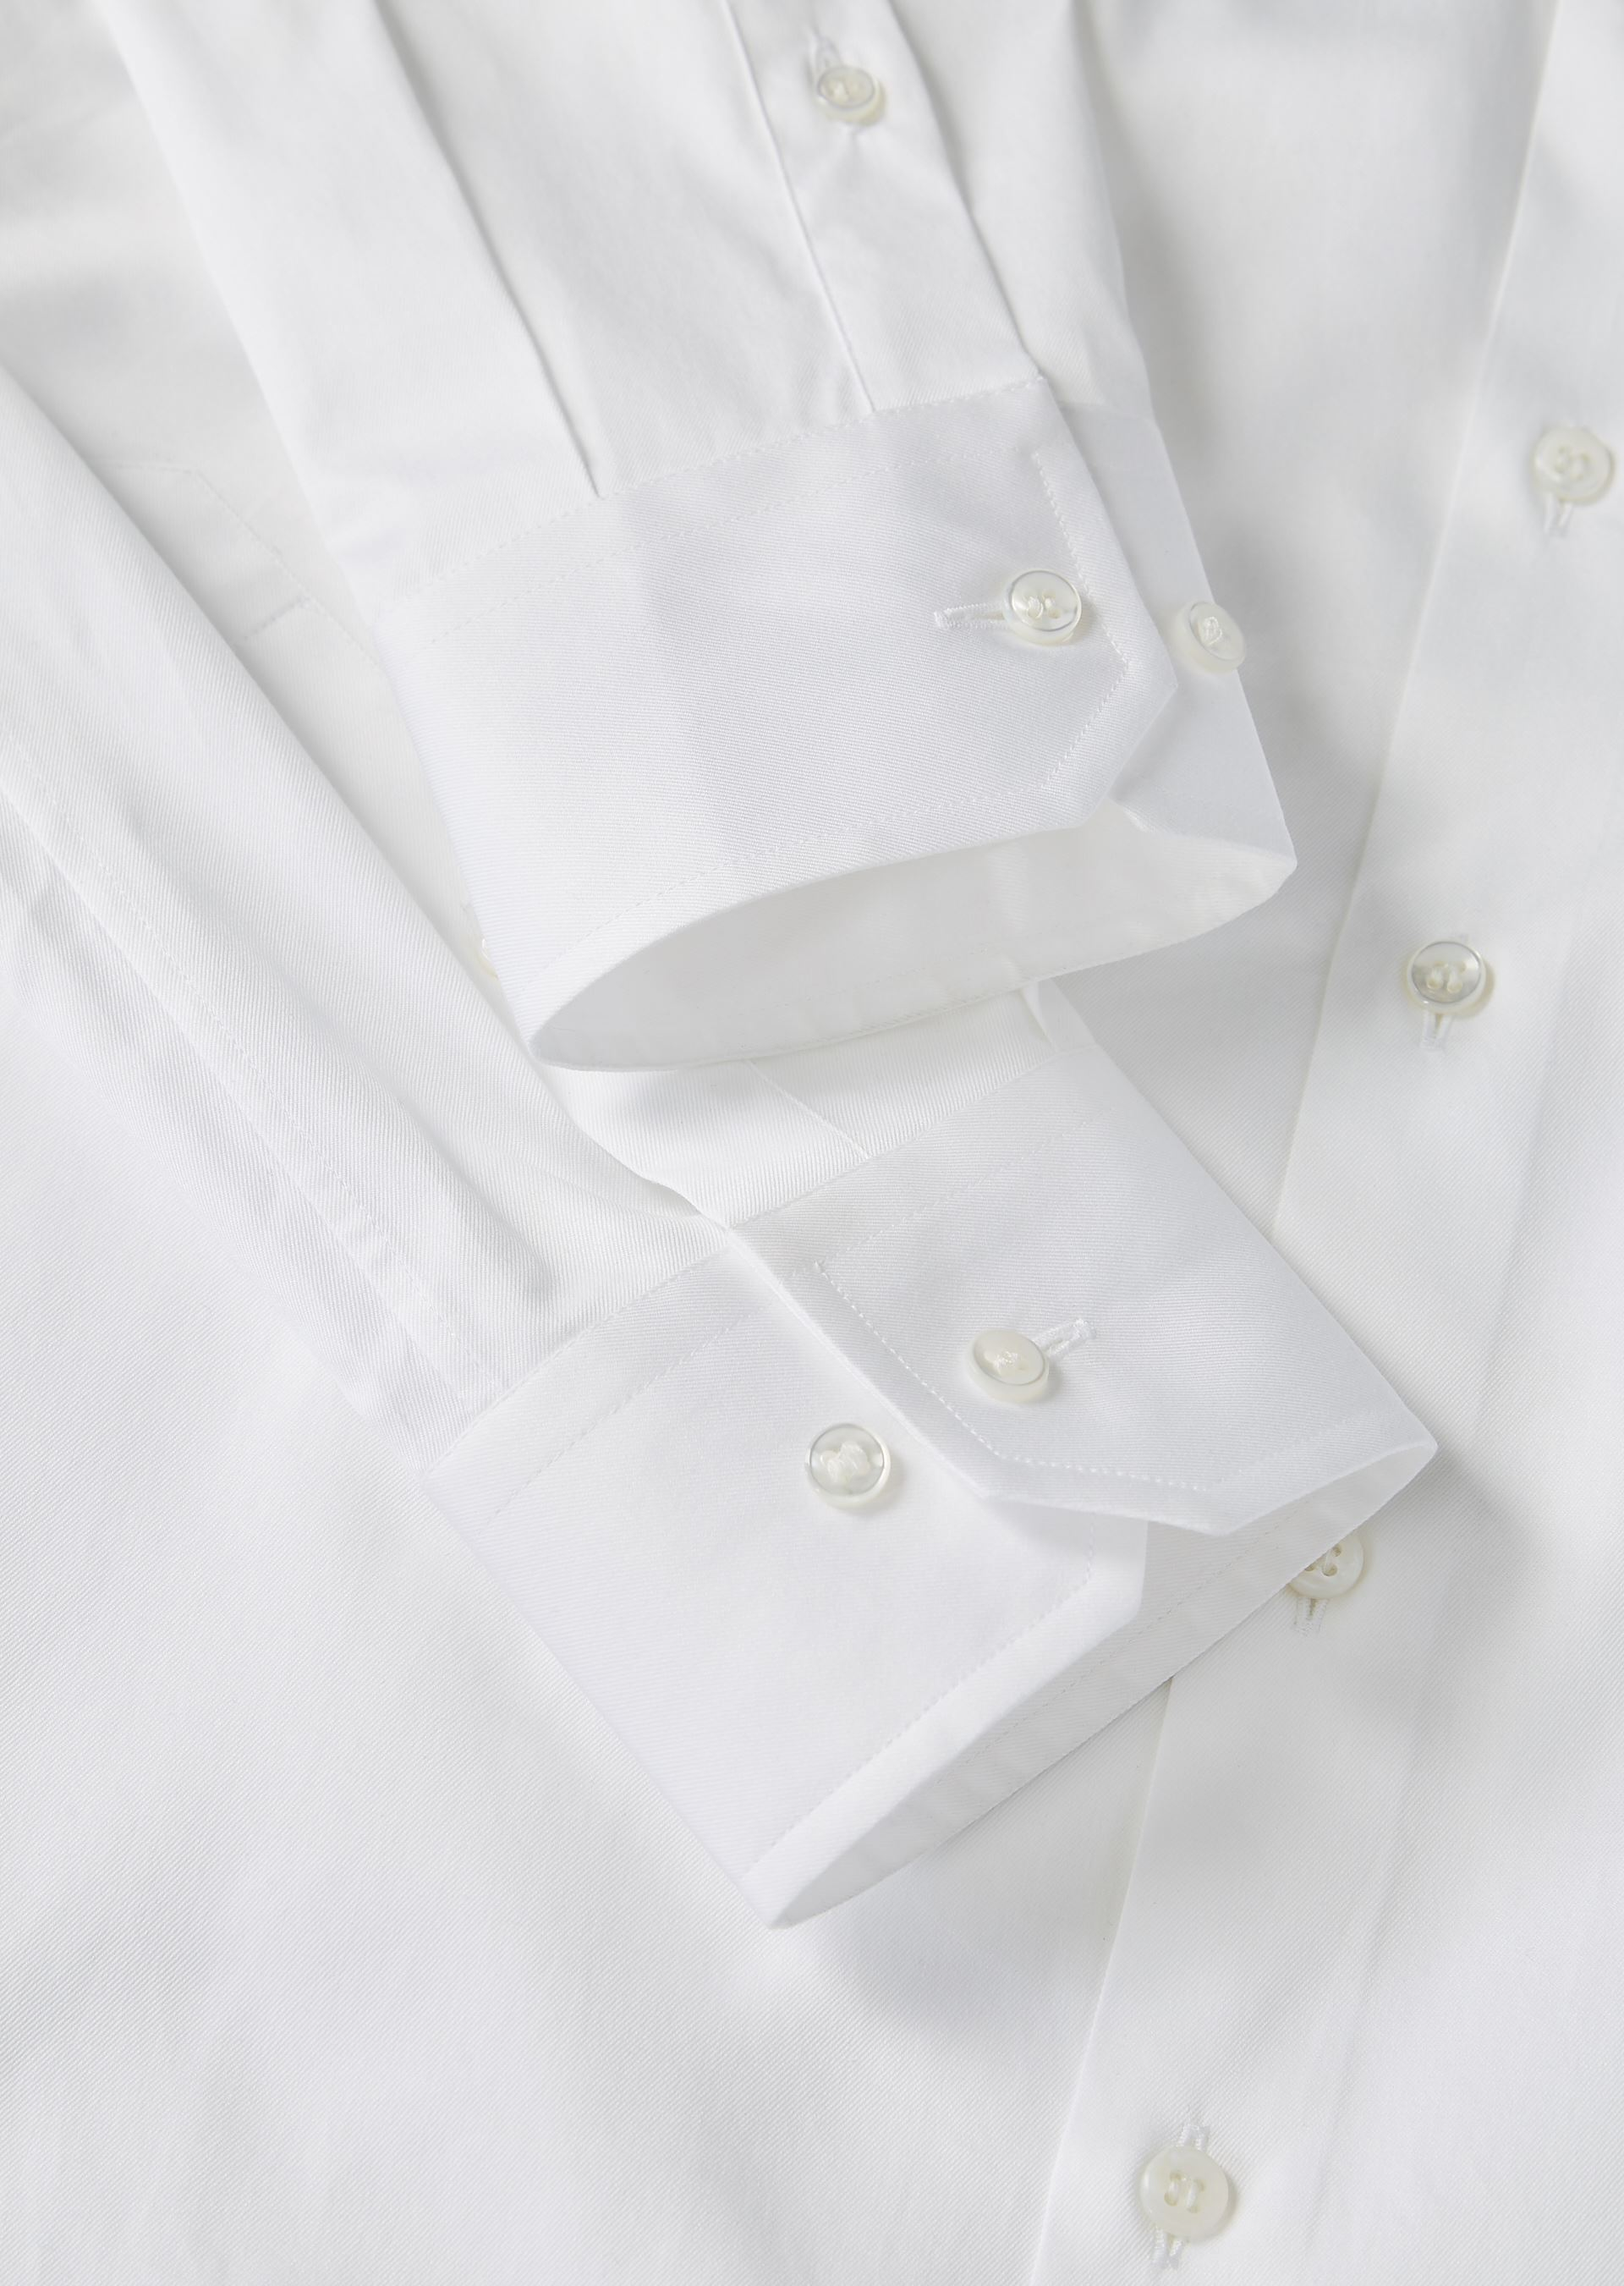 GIORGIO ARMANI FRENCH COLLAR COTTON TWILL SHIRT Classic Shirt U a